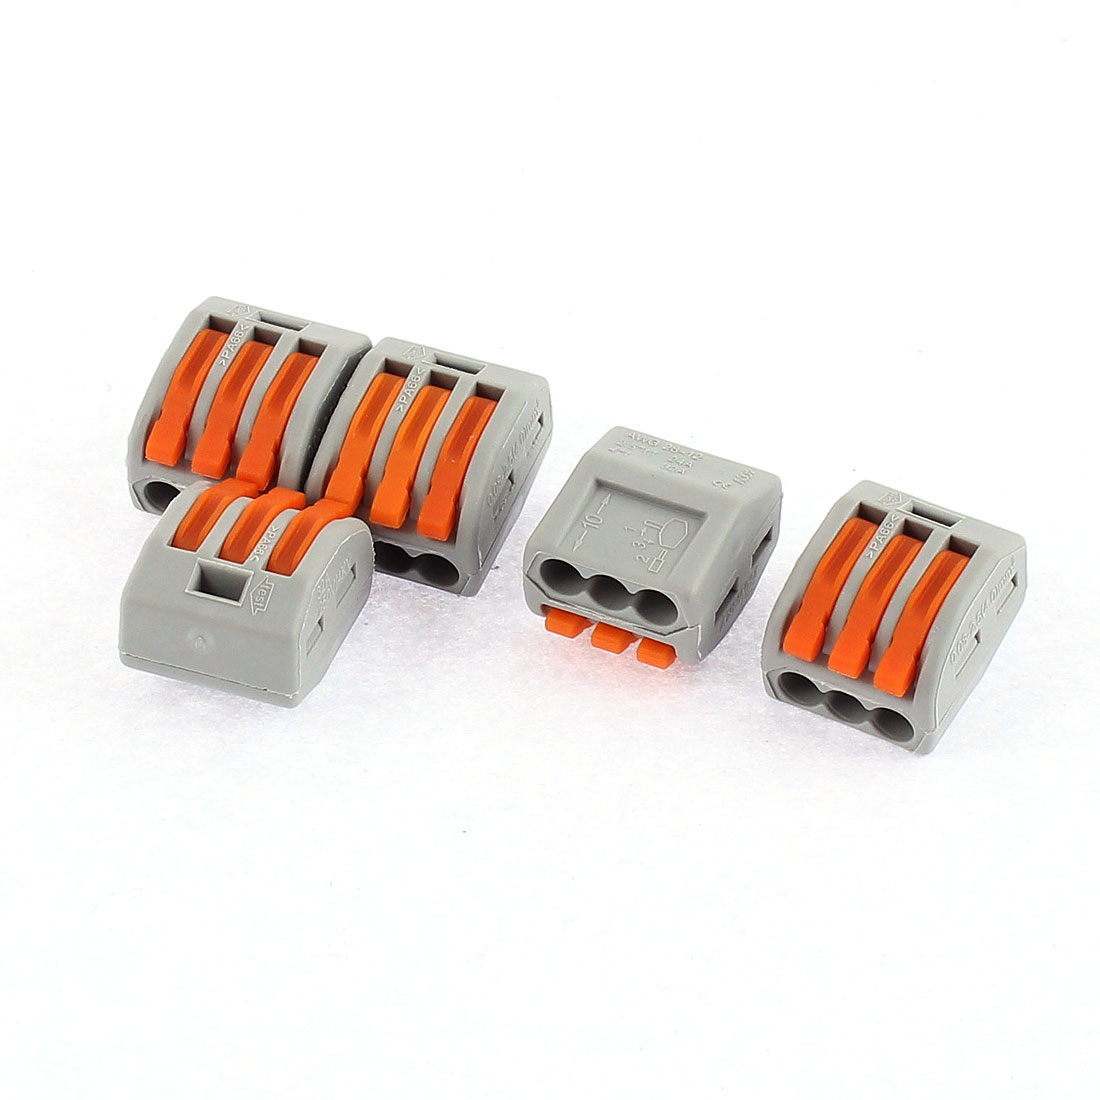 AC 250V 32A Lever Lock 3 Pole Push Cable Wire Connector Terminal Block 5 Pcs